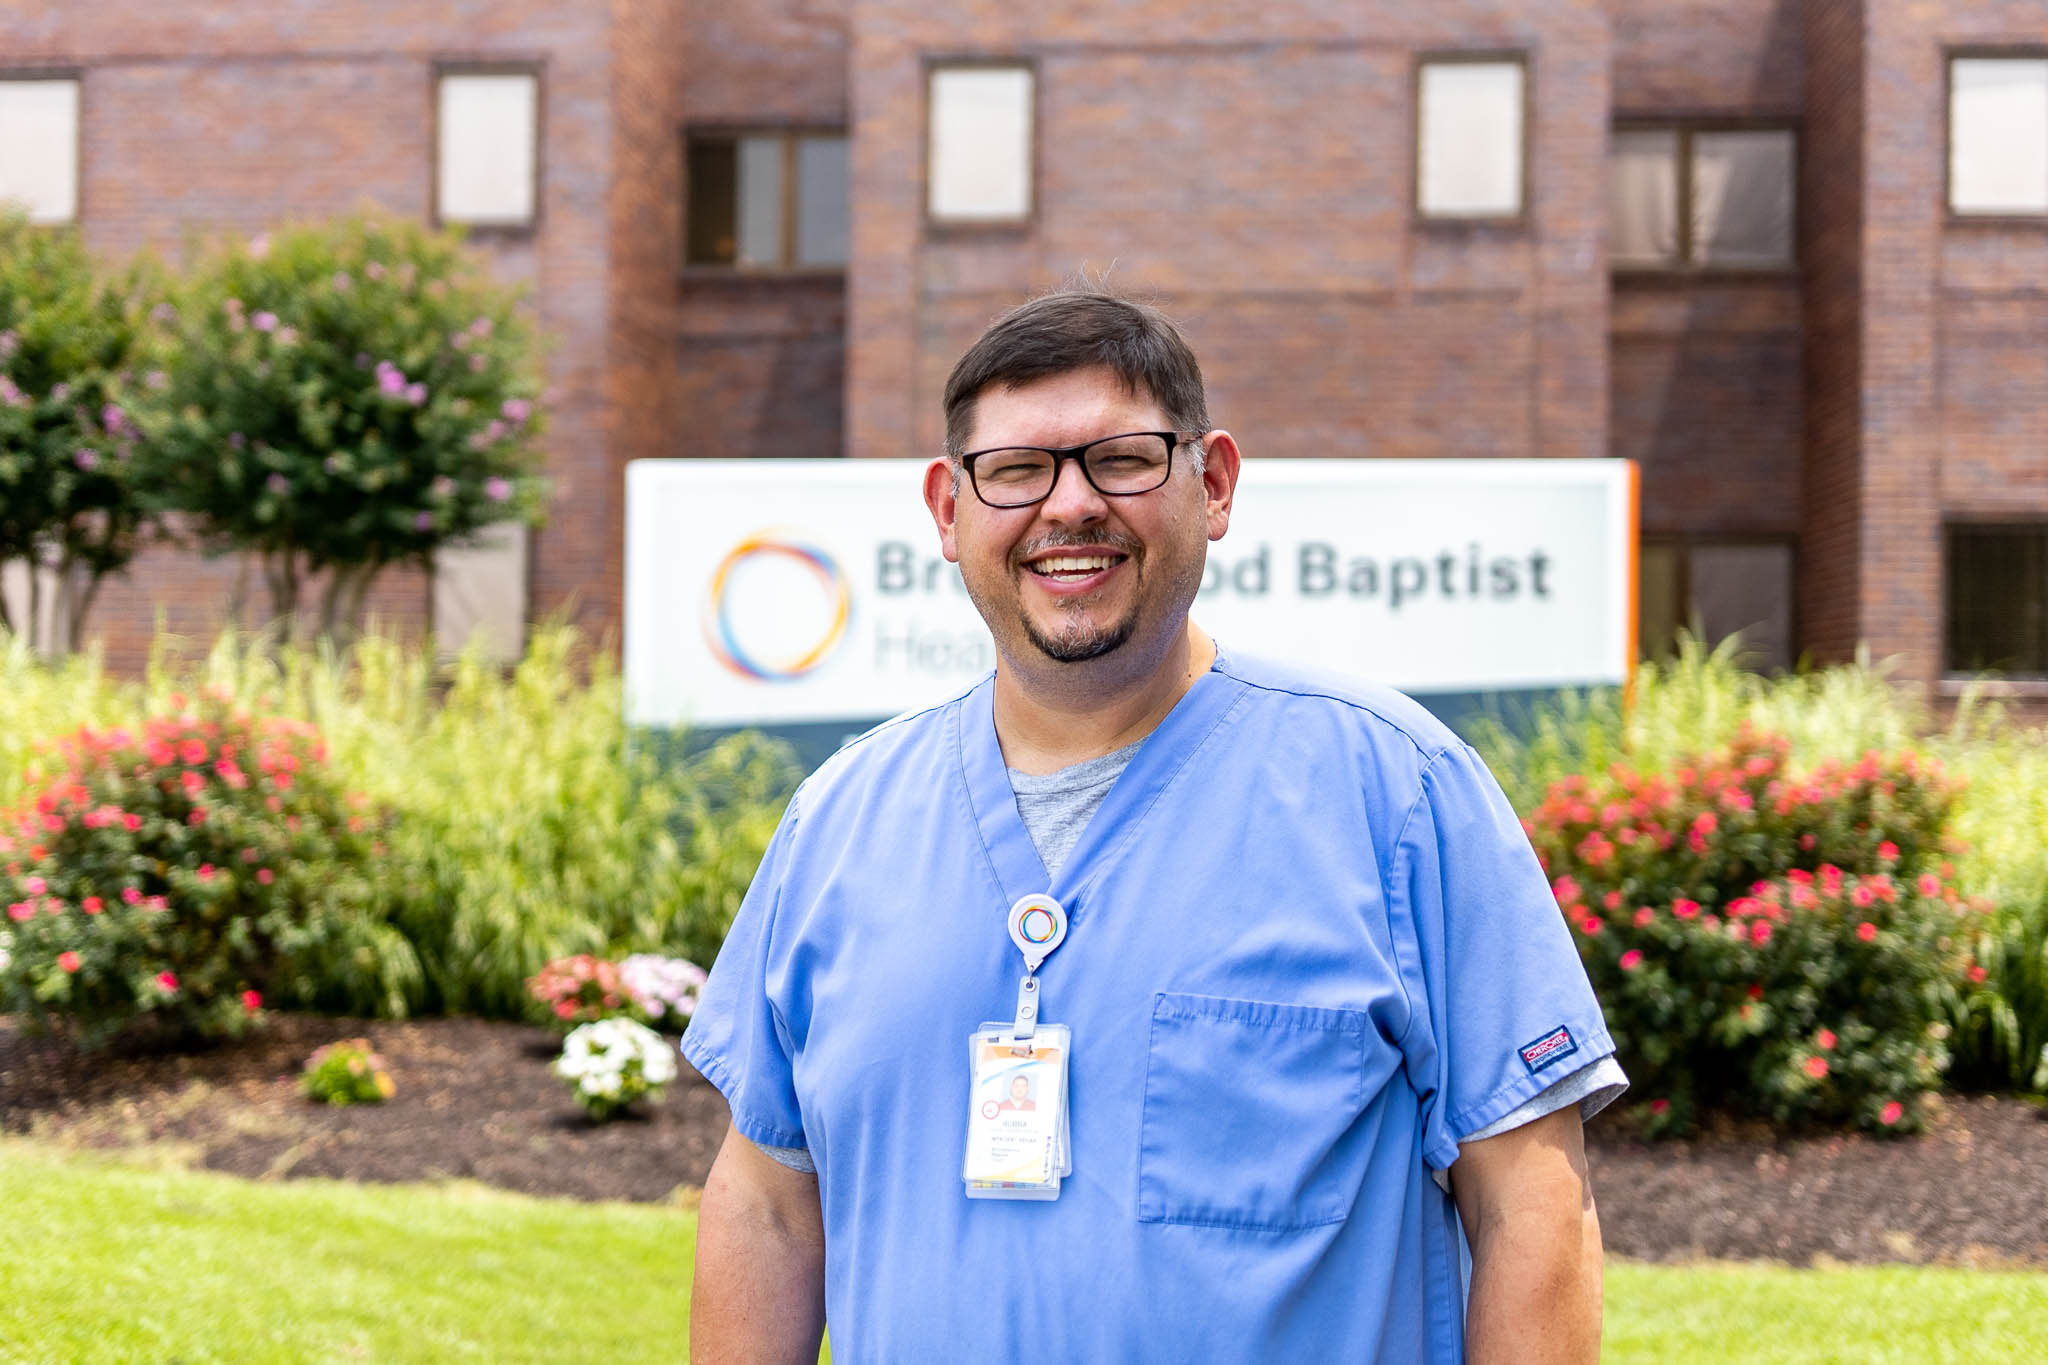 Meet the singing physical therapy assistant at Walker Baptist who's also a pastor